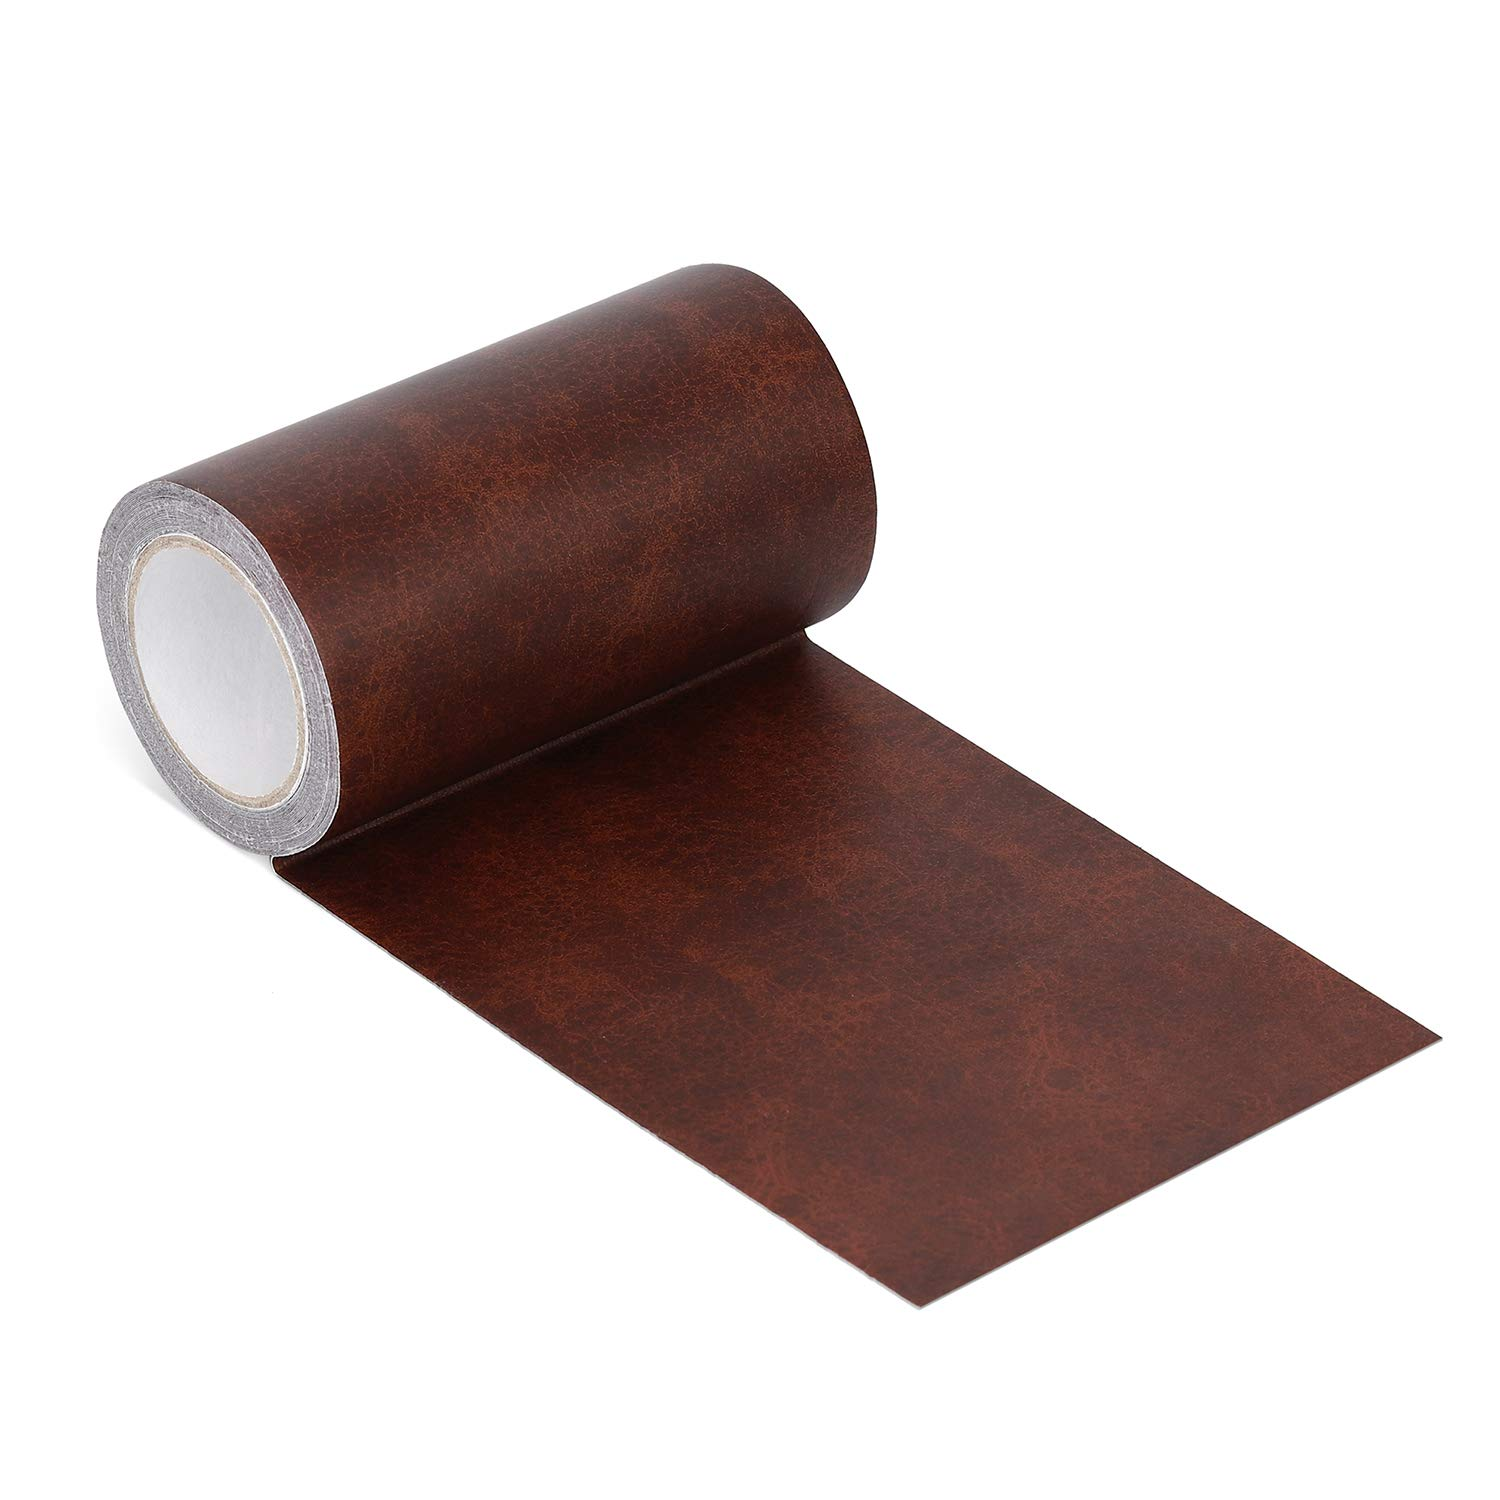 Onine Leather Repair Tape Patch Leather Adhesive for Sofas, Car Seats, Handbags, Jackets,First Aid Patch (red Brown Leather)